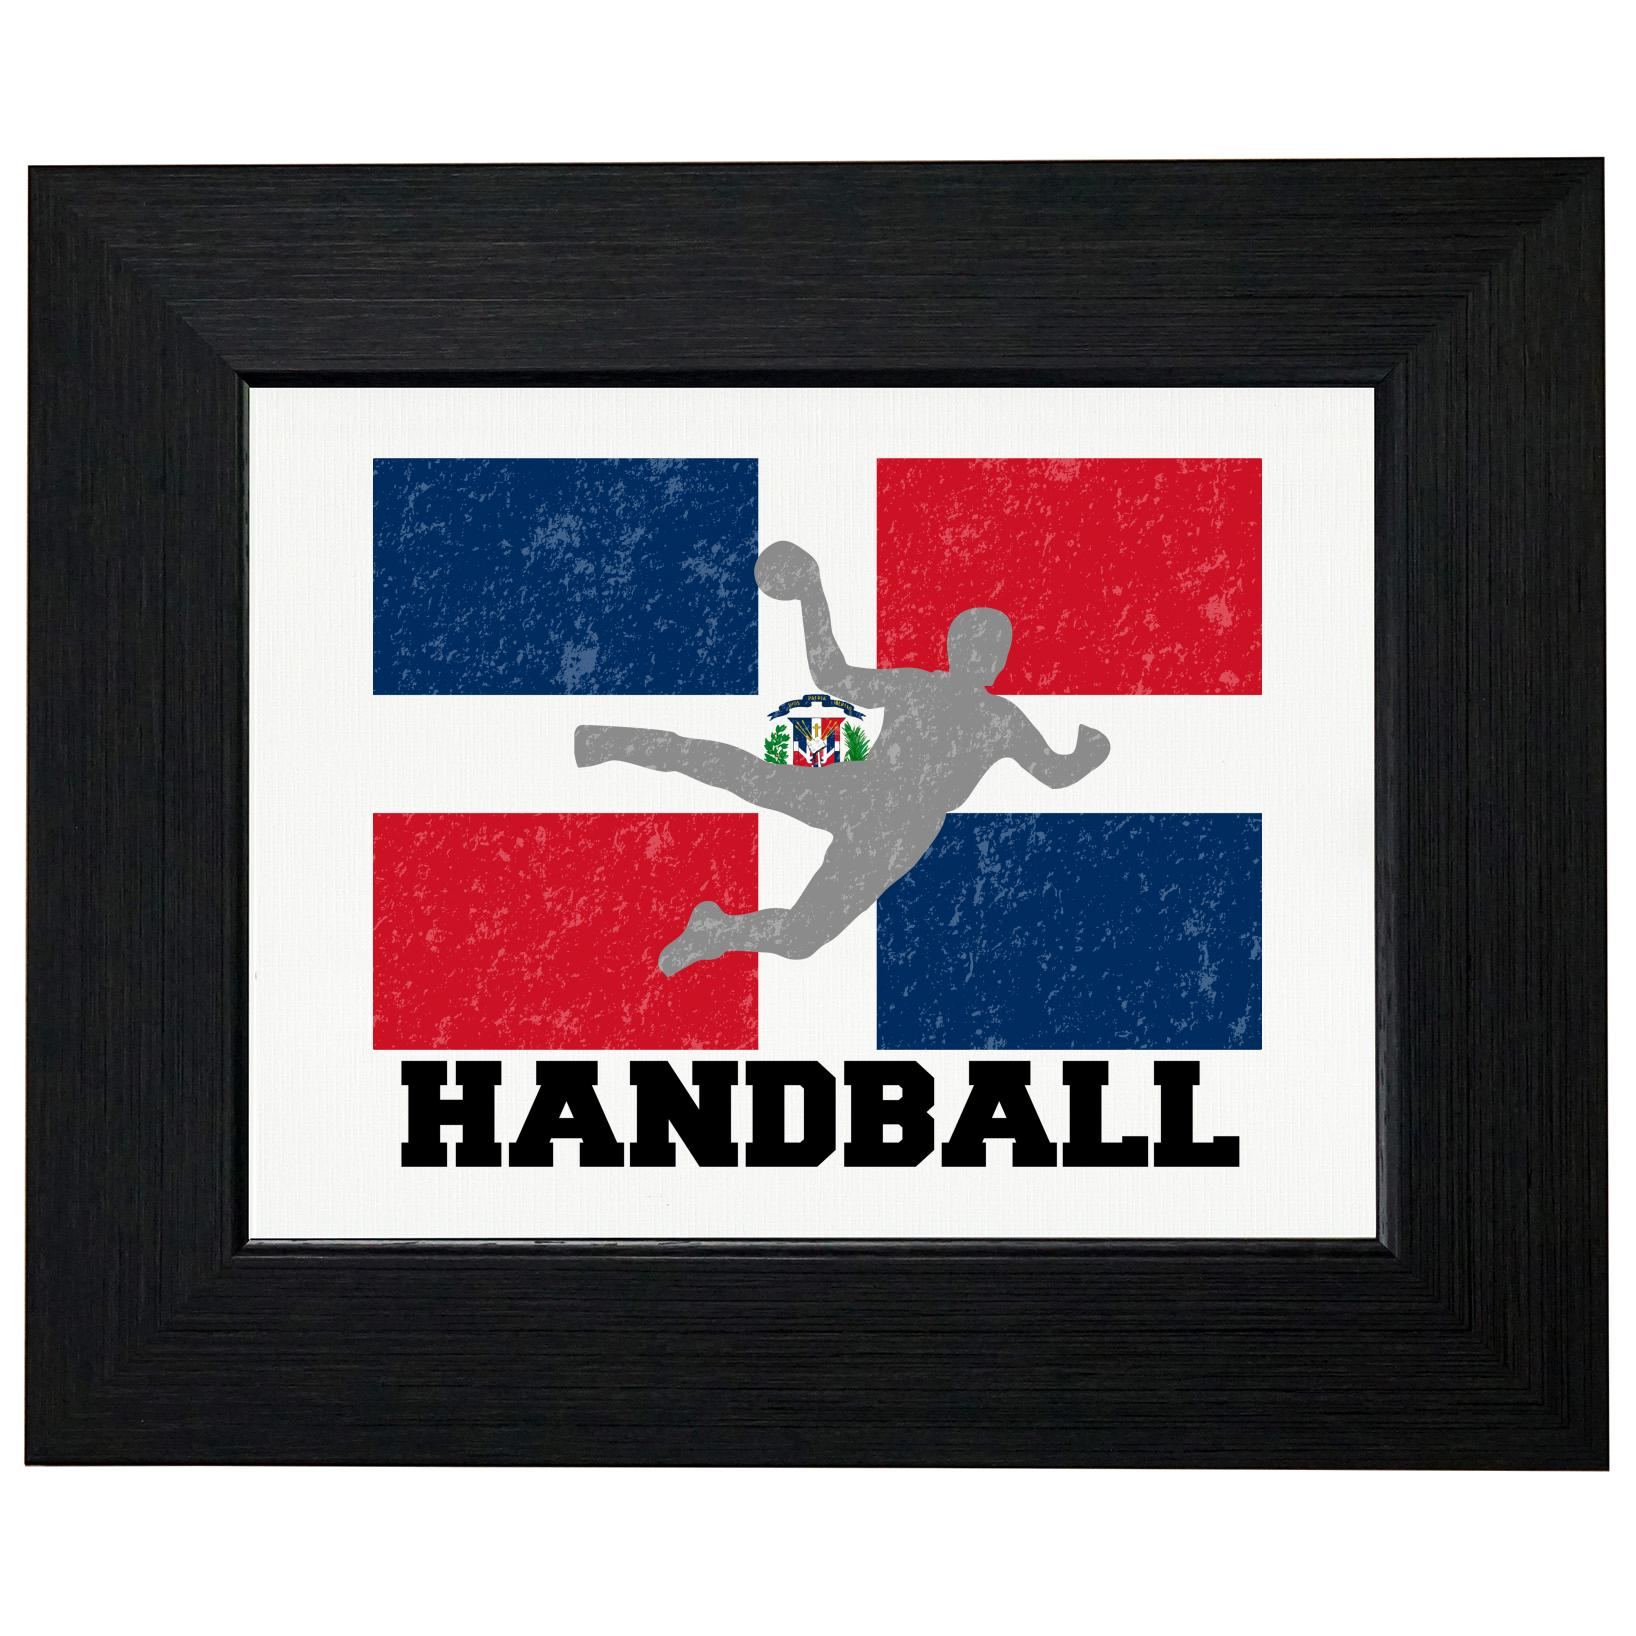 Dominican Republic Olympic Handball Flag Framed Print Poster Wall or Desk Mount Options by Royal Prints